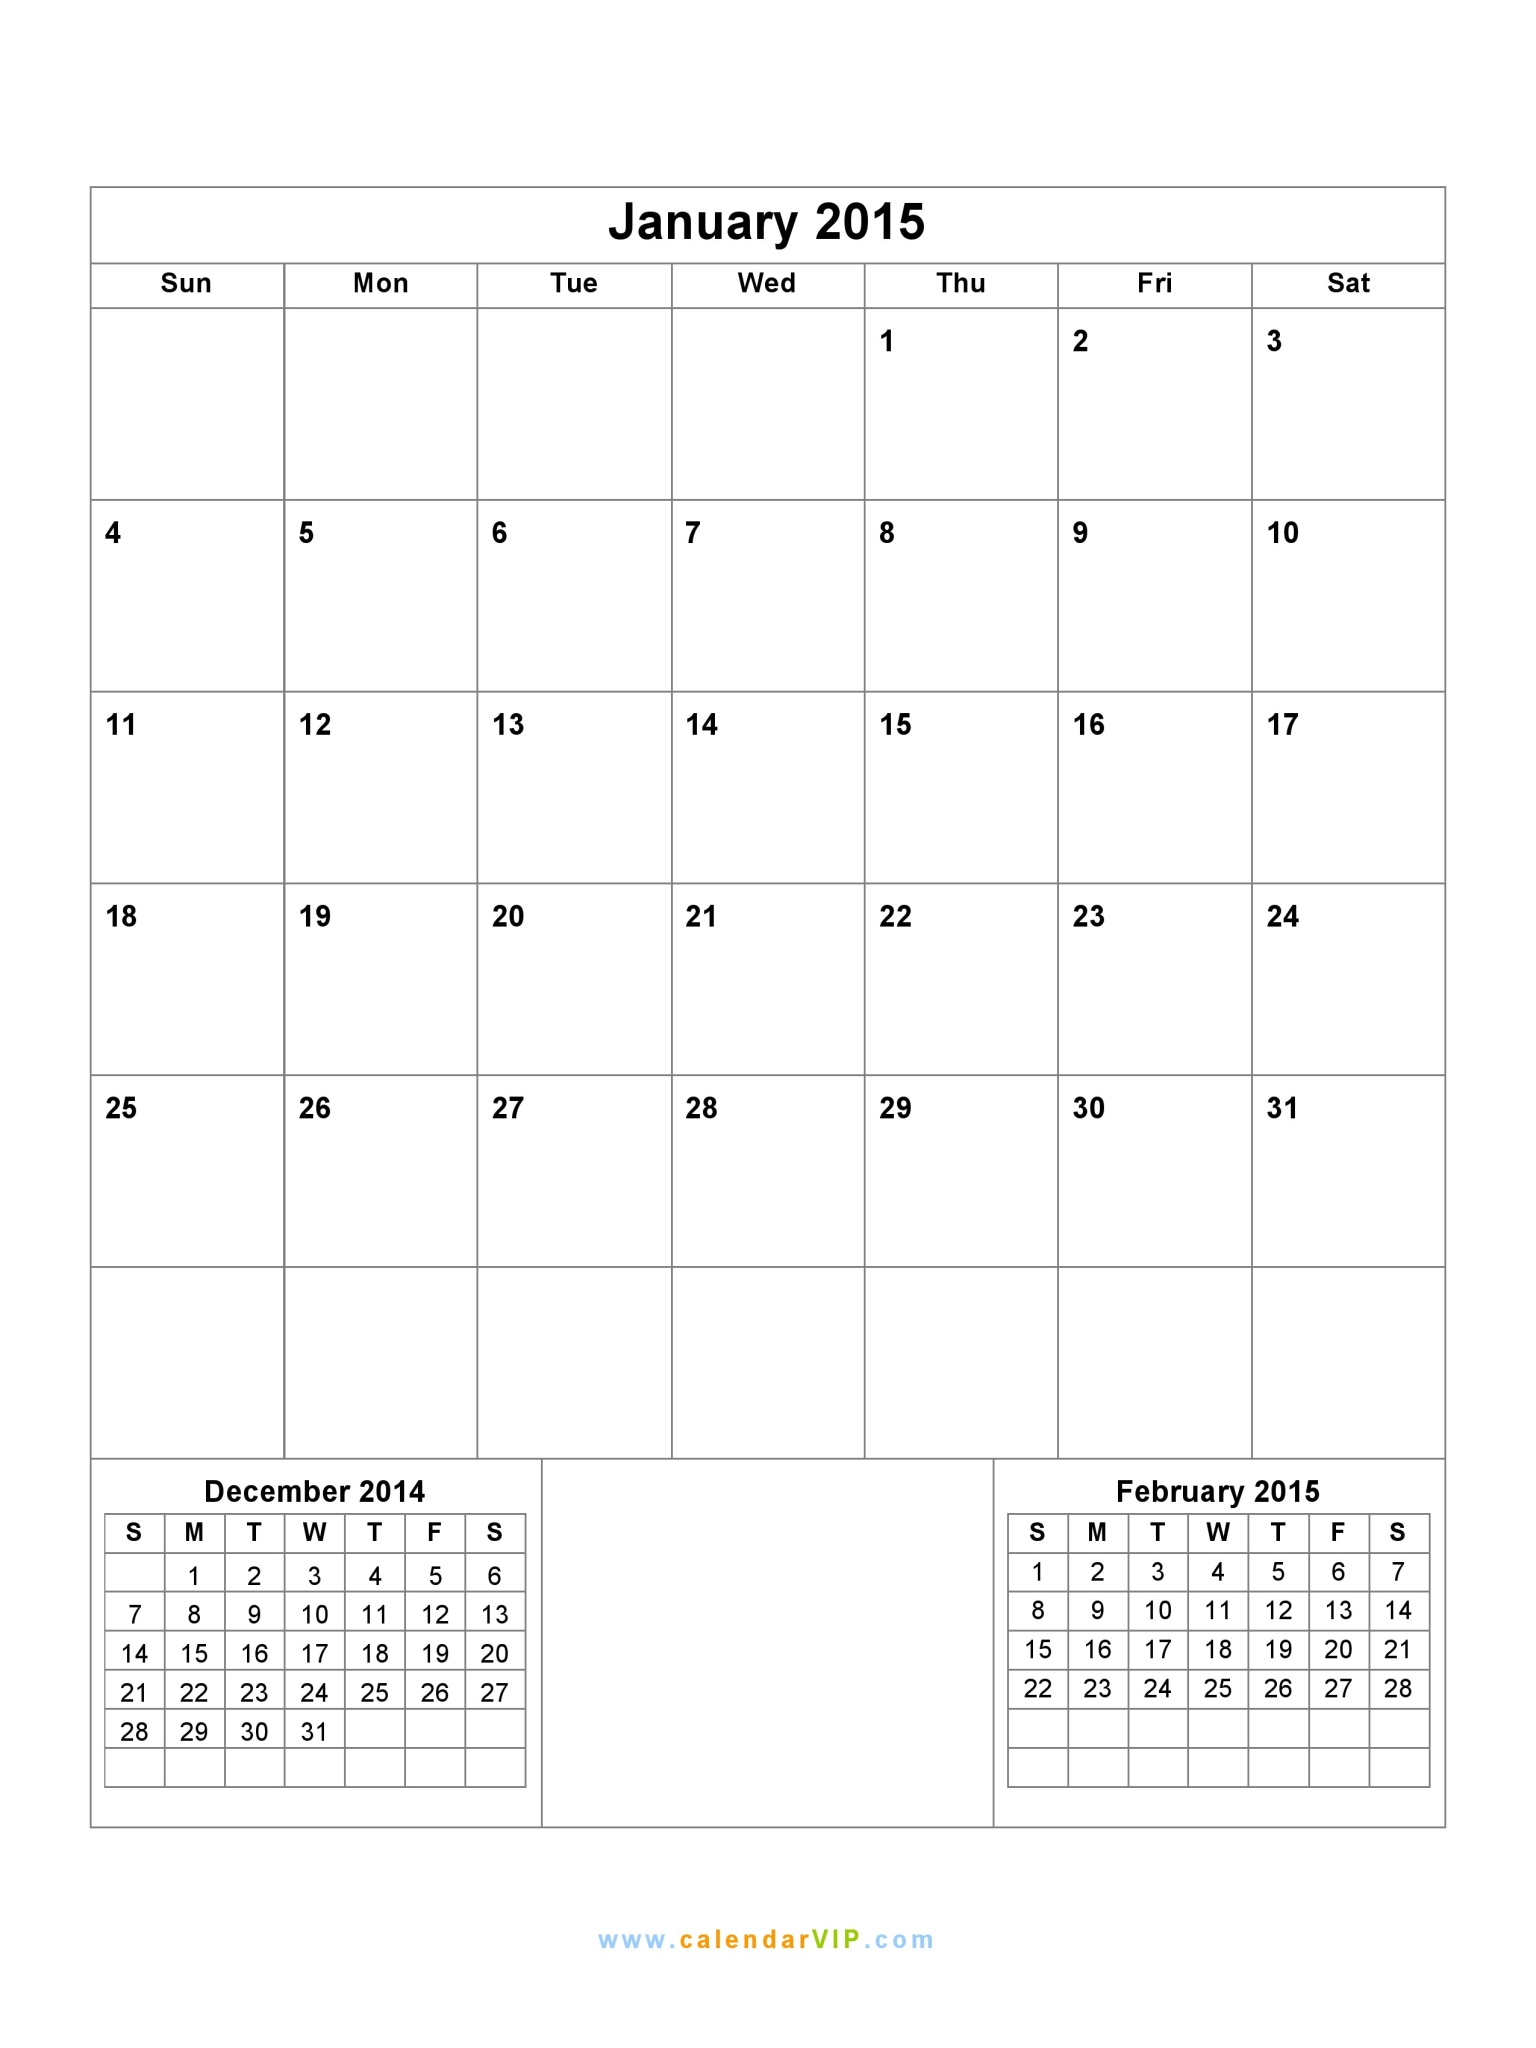 January 2015 calendar blank printable calendar template for 2015 monthly calendar template for word